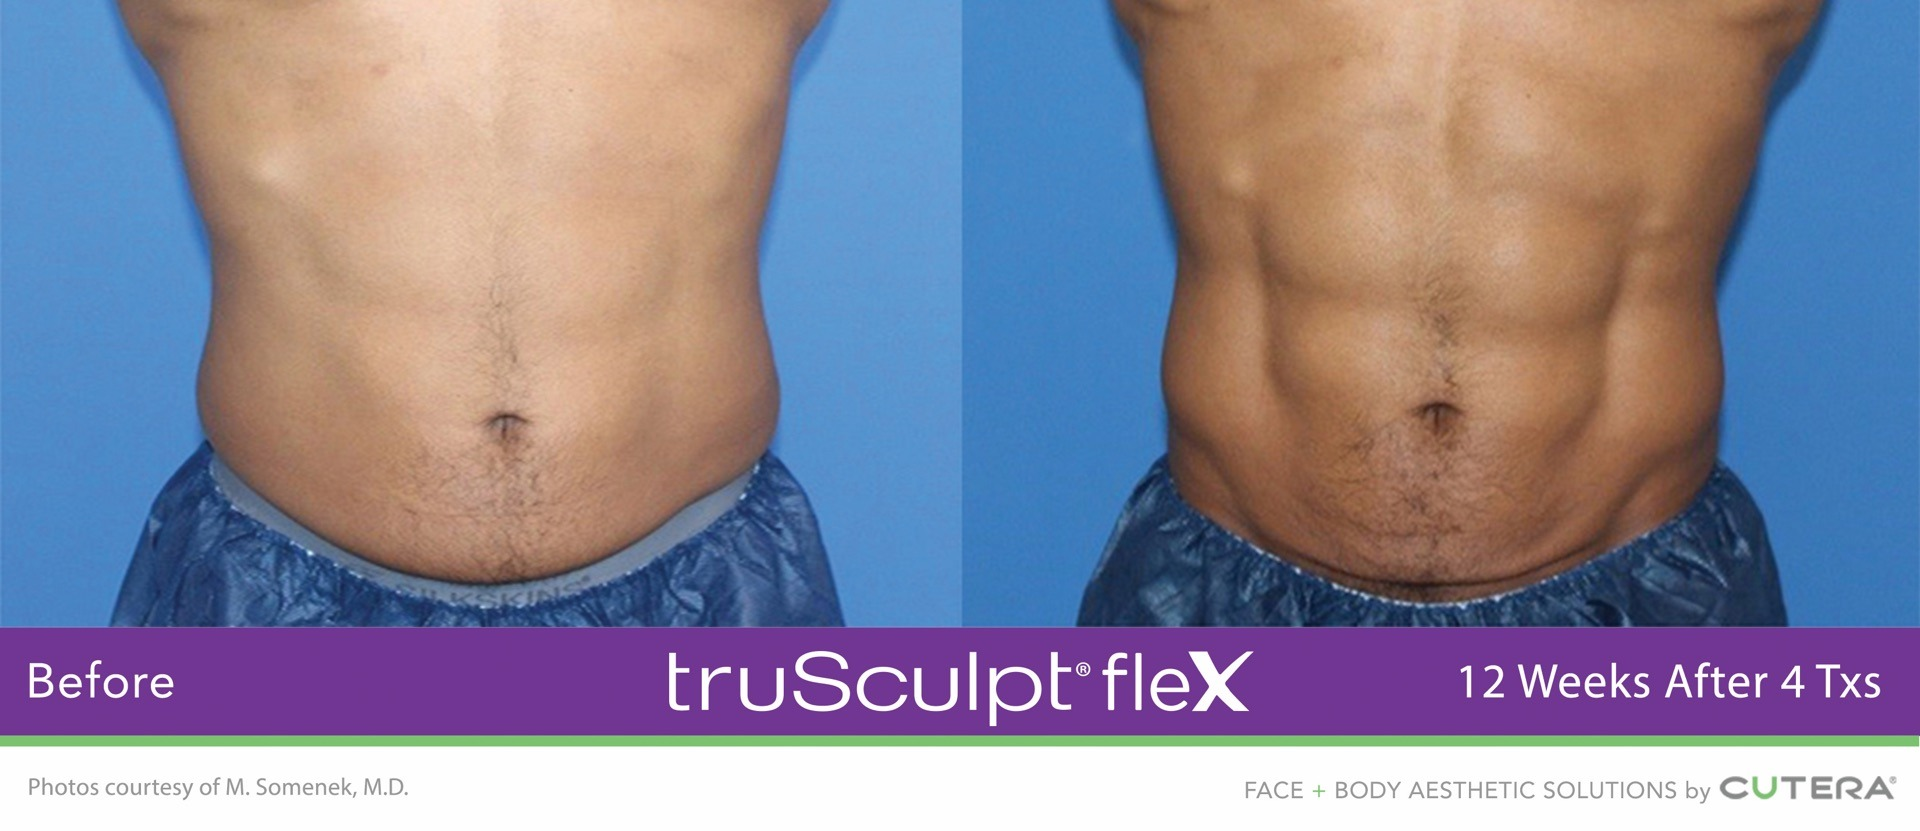 truSculpt Flex Before and After Image by Somenek